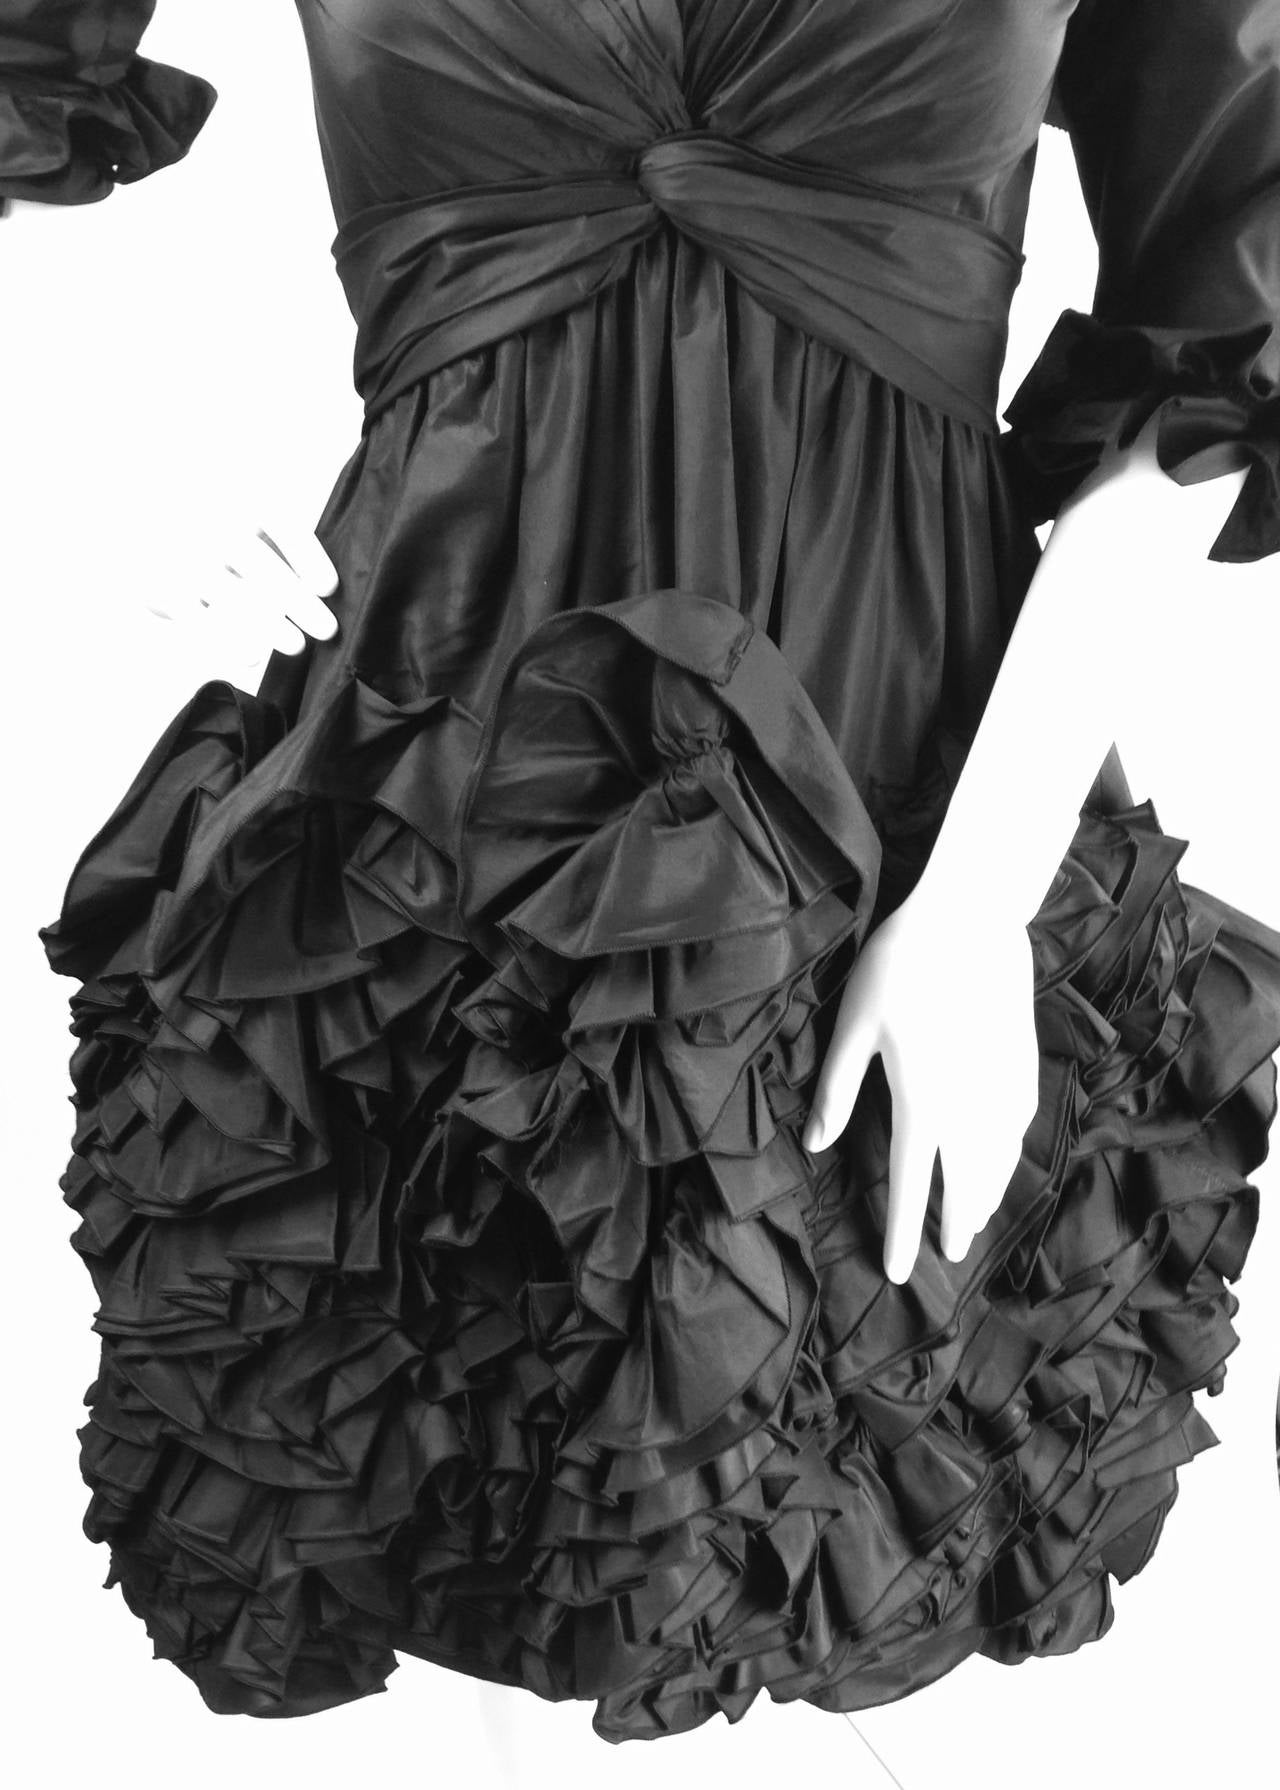 Breathtaking 1990's Oscar de la Renta Dress is meticulously constructed of Black Silk Faille. Ruffles and rosettes create wonderful texture and interest on the high low skirt accented by ruffles on the three quarter length sleeves. The cinched